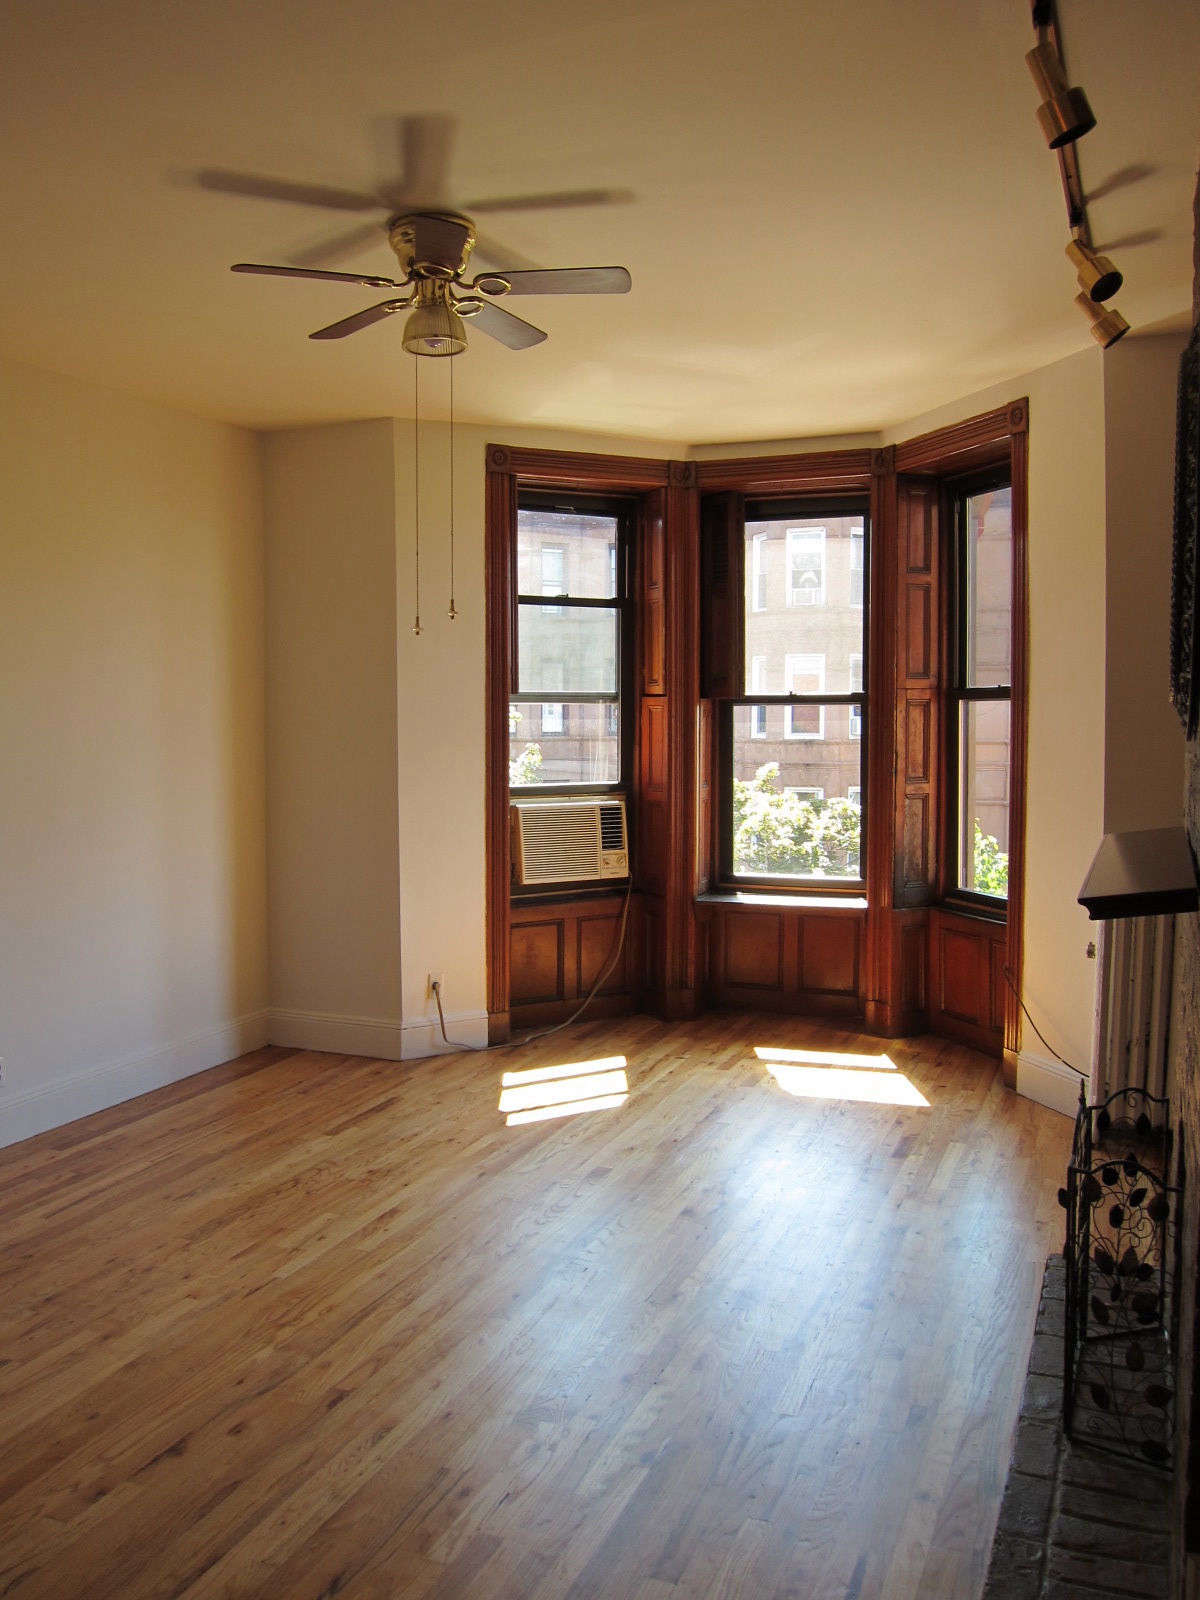 Before, the apartment was an ode to the '80s, with track lighting, ceiling fans, and yellow oak floors.